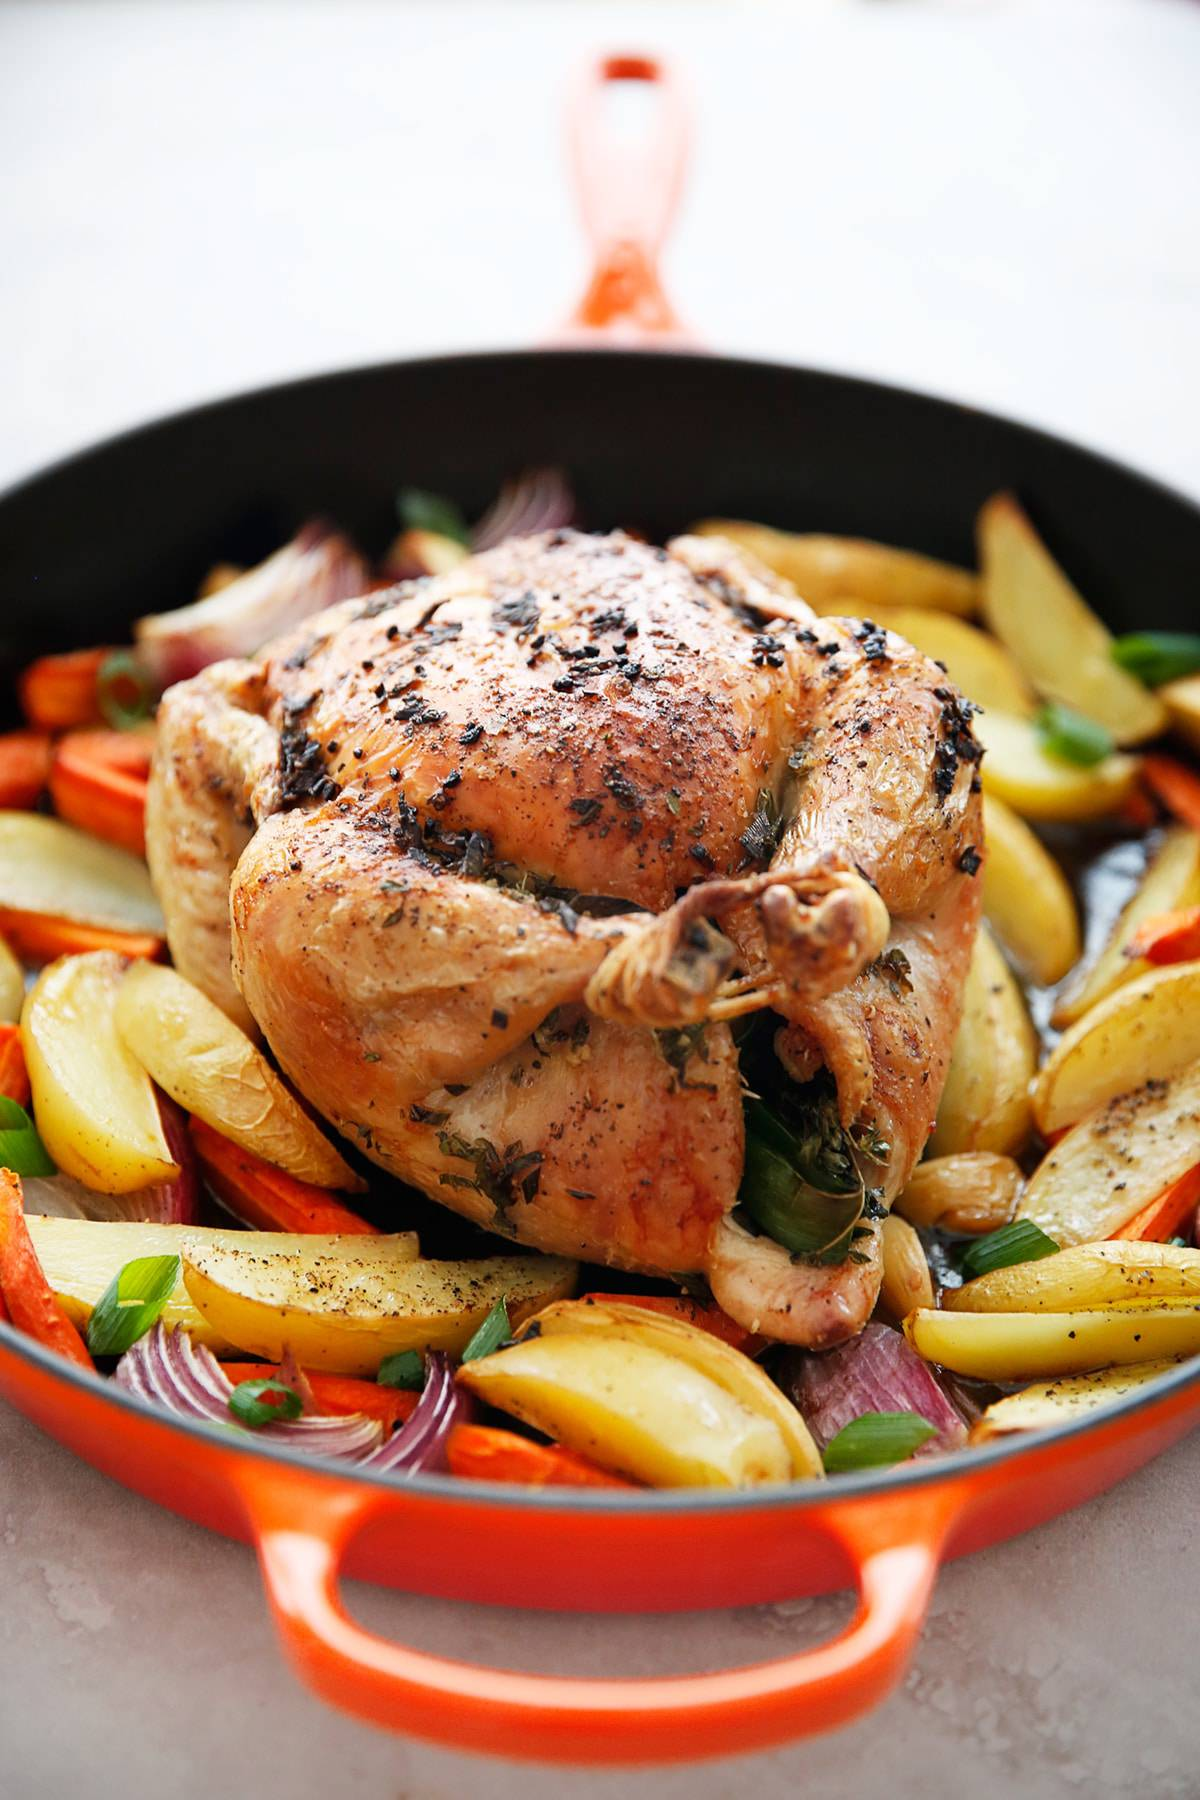 Whole chicken dinner in a skillet